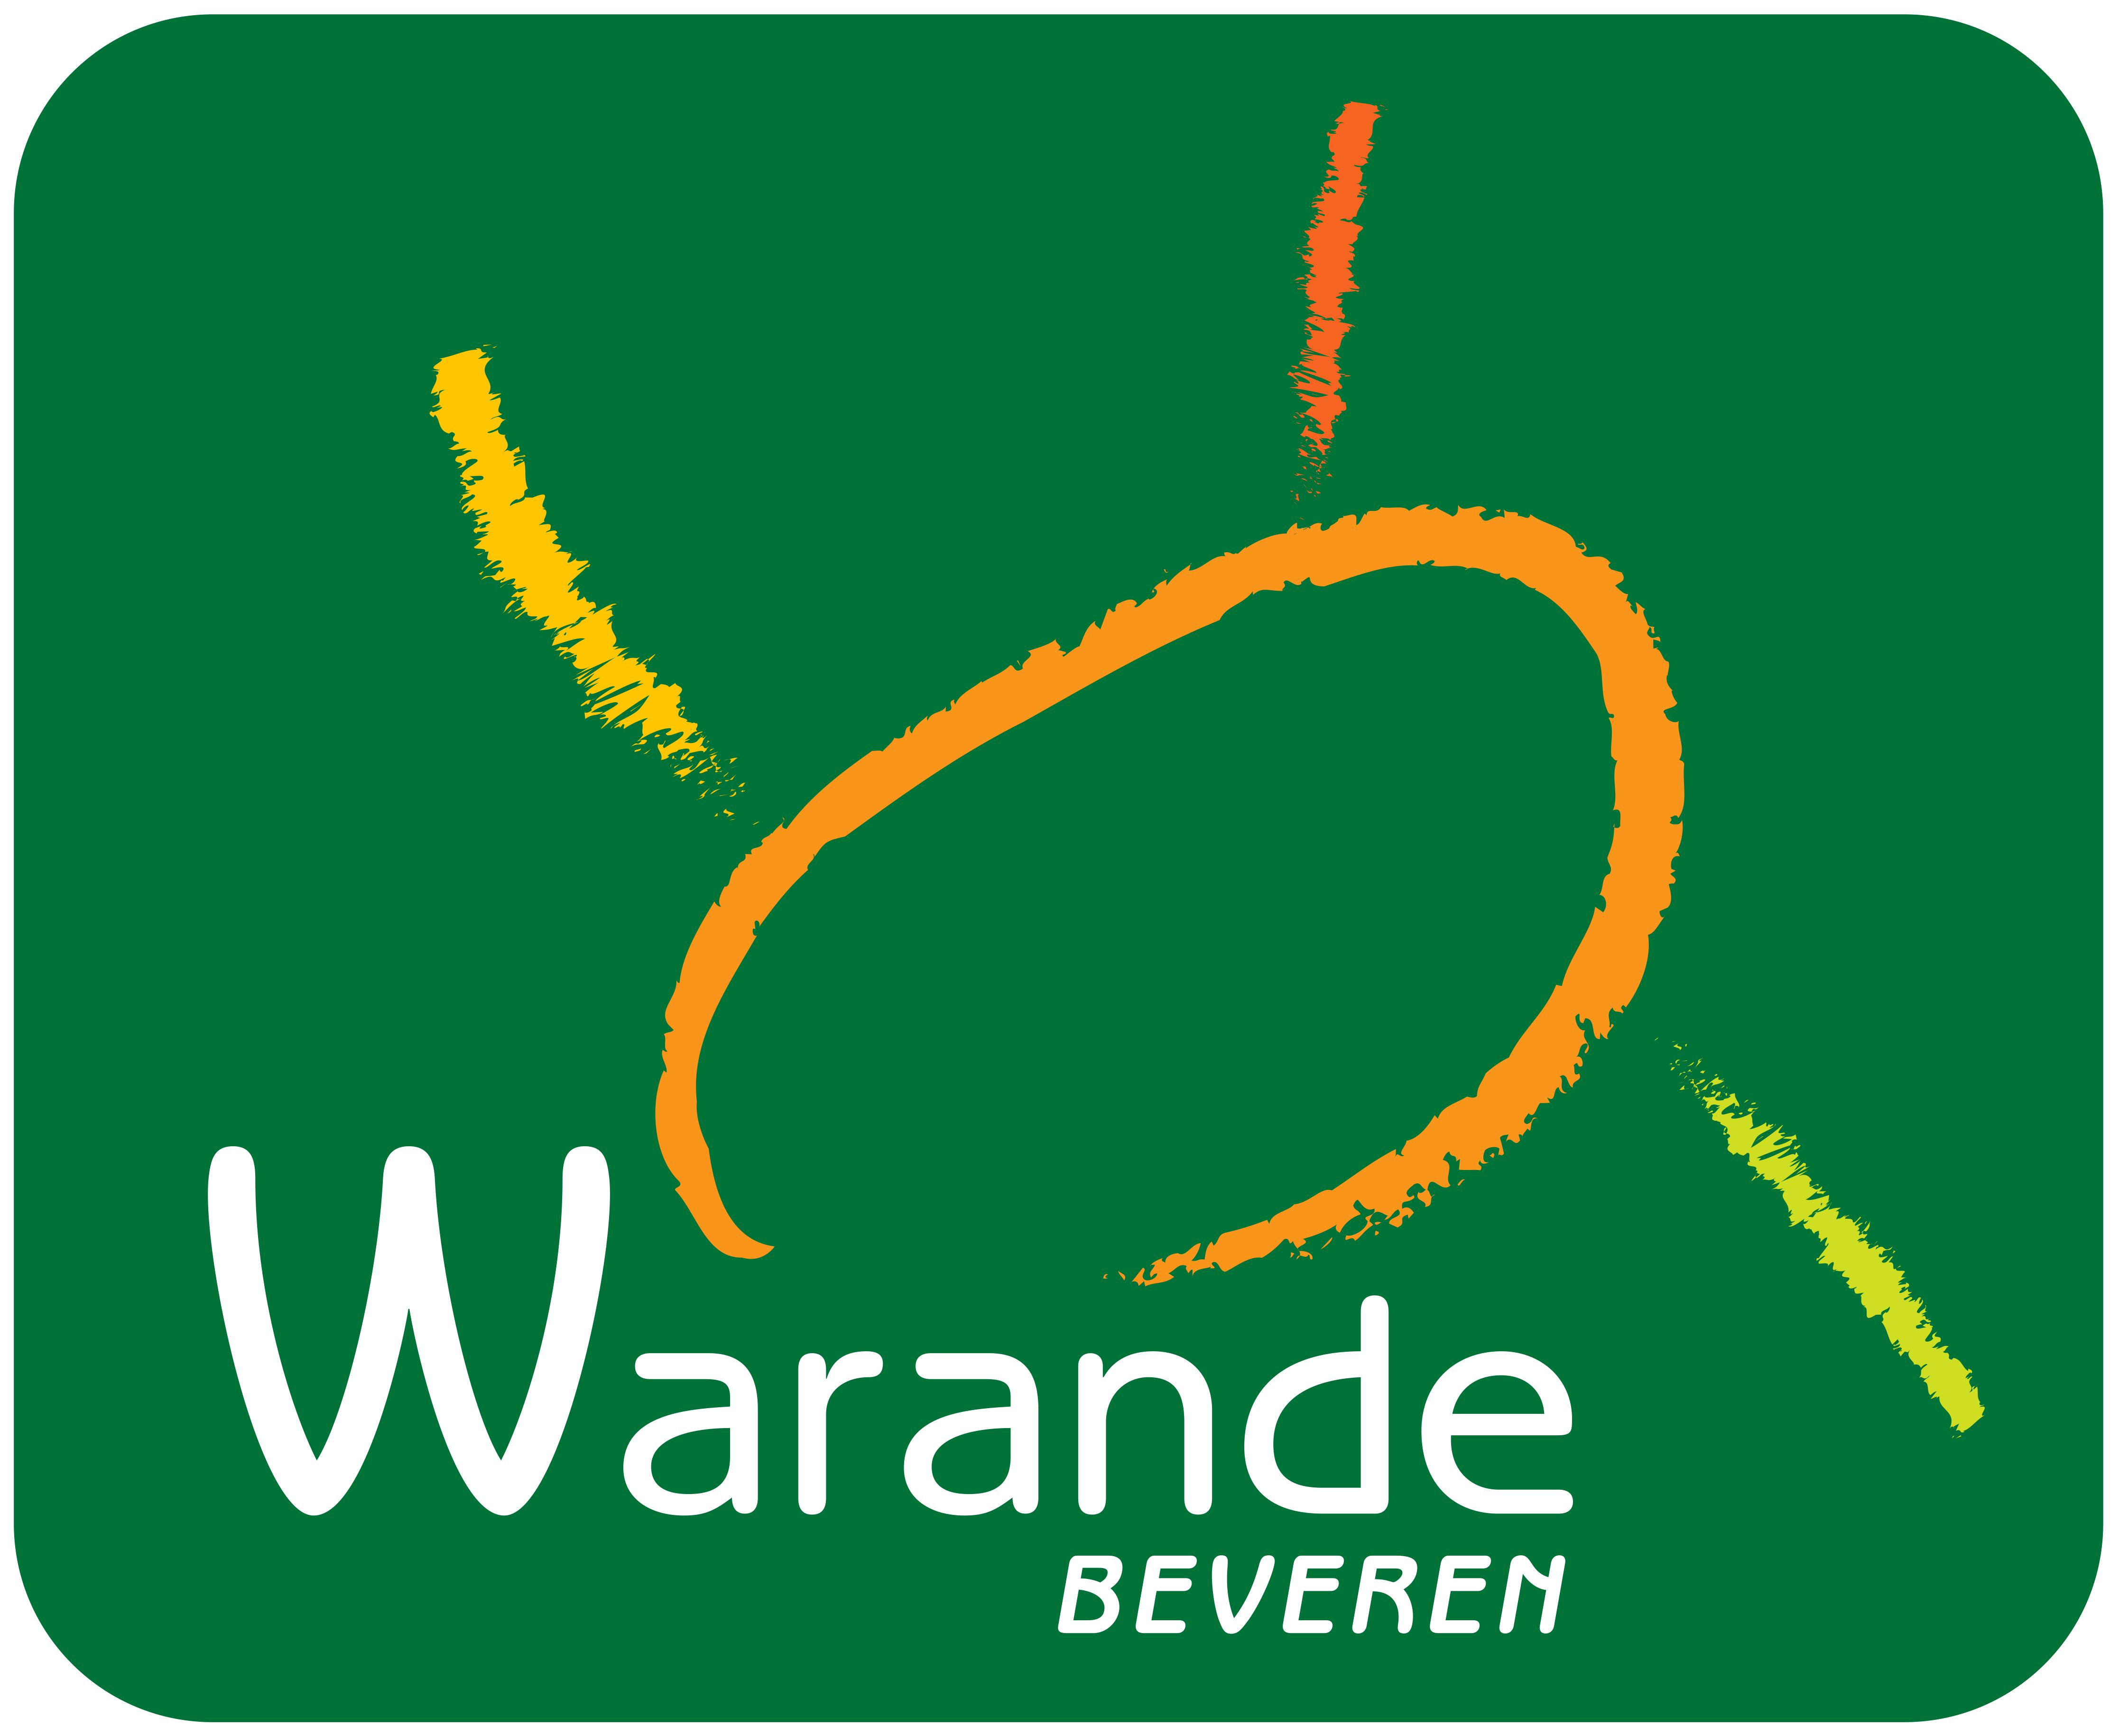 Warande Beveren